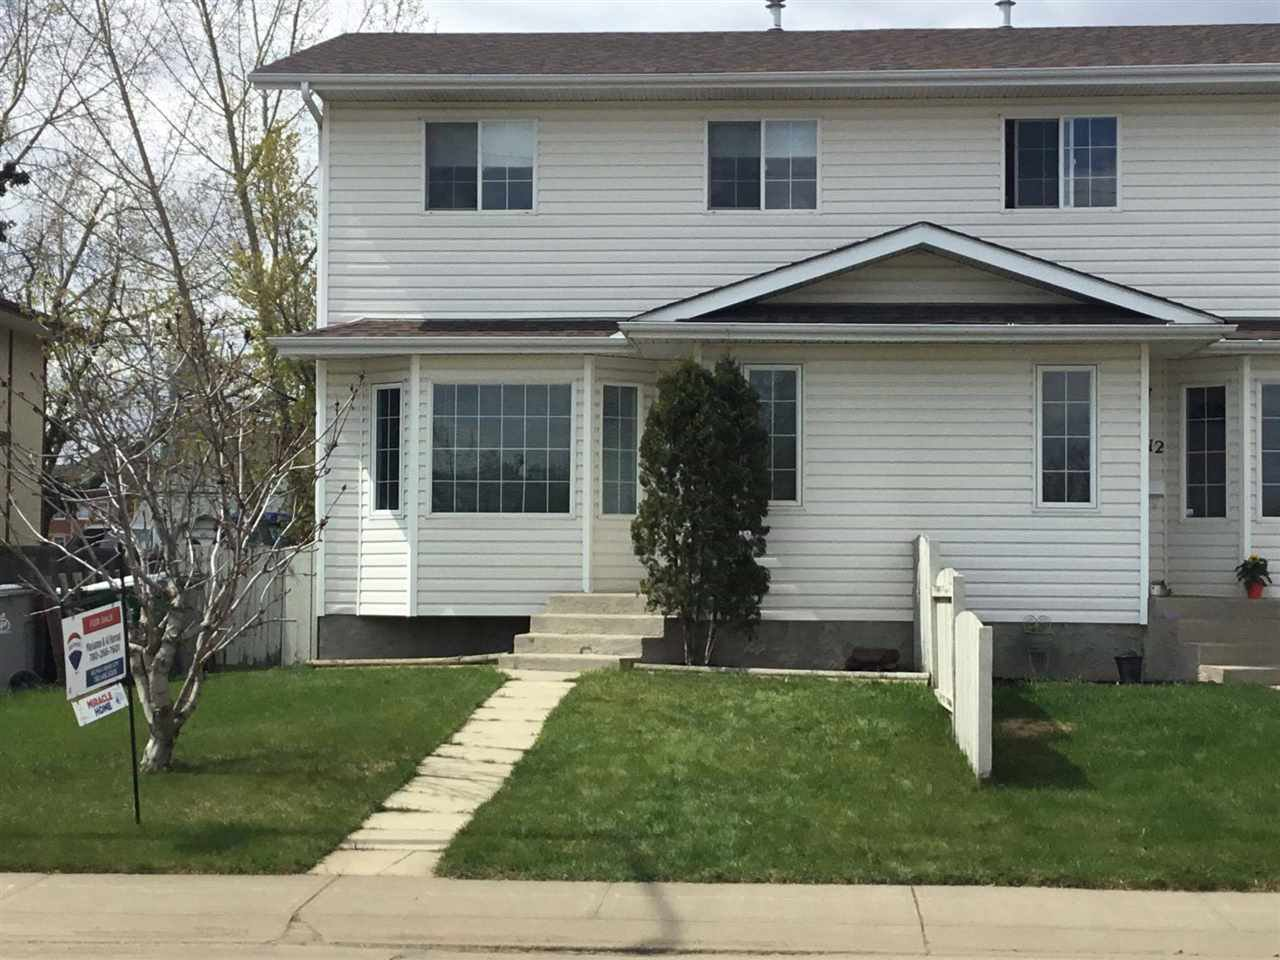 Main Photo: A 10012 99 Street: Morinville House Half Duplex for sale : MLS®# E4183090